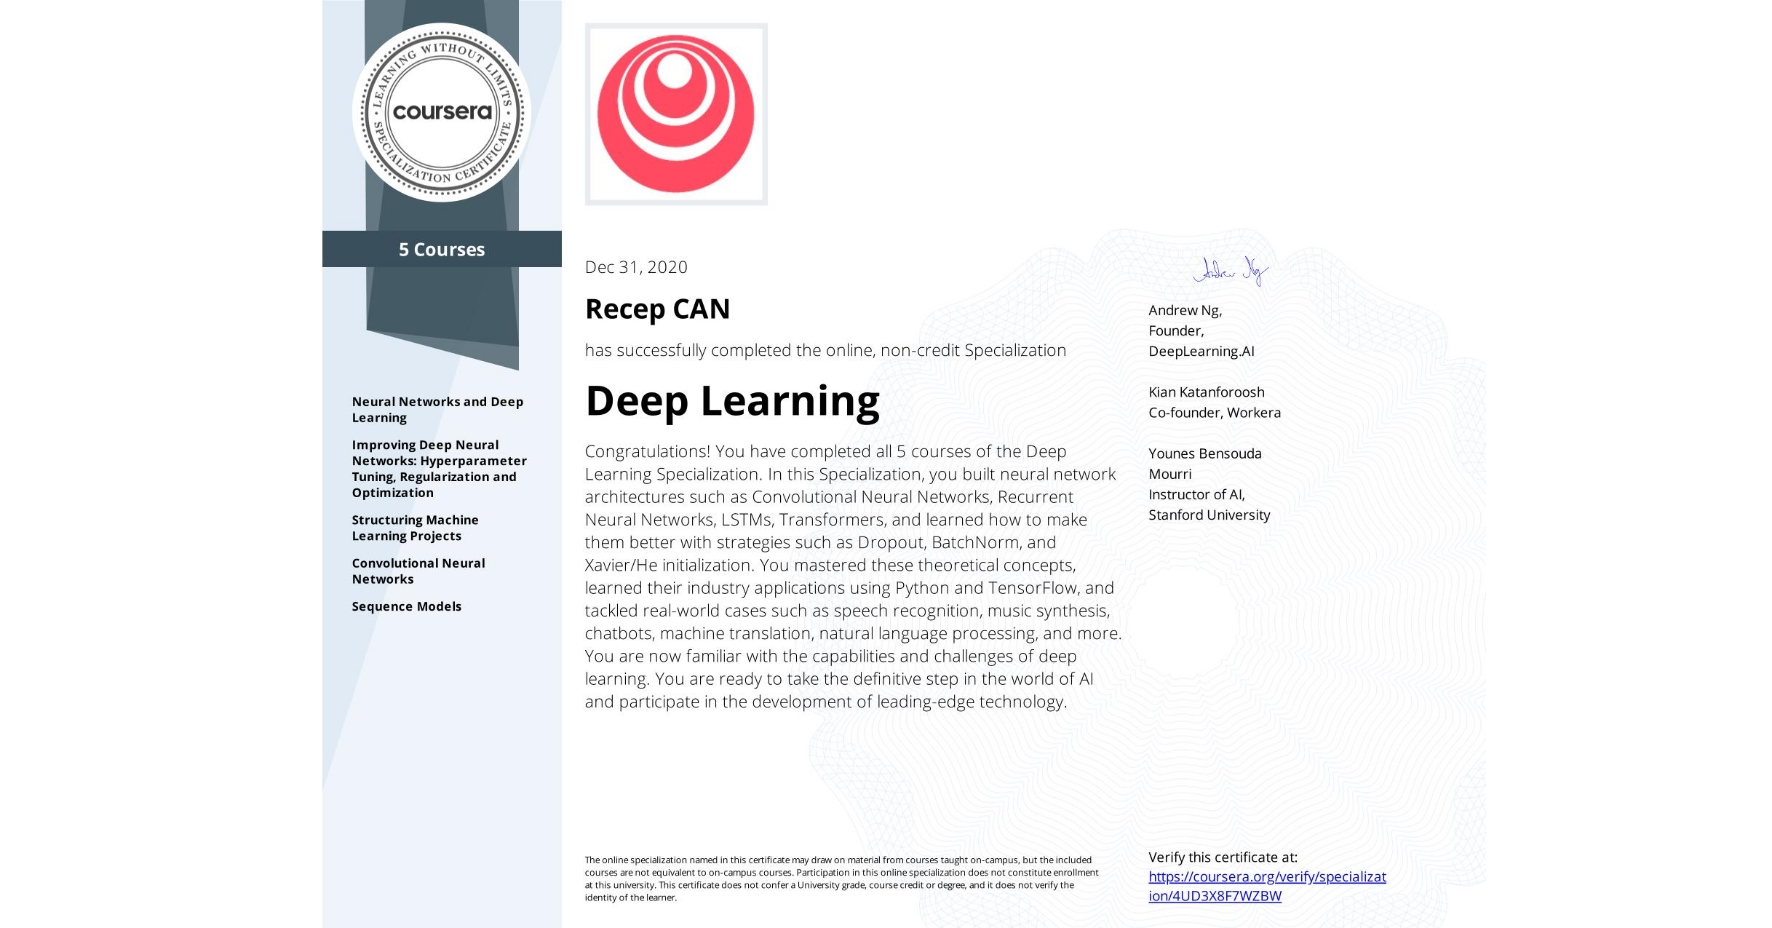 View certificate for Recep CAN, Deep Learning, offered through Coursera. The Deep Learning Specialization is designed to prepare learners to participate in the development of cutting-edge AI technology, and to understand the capability, the challenges, and the consequences of the rise of deep learning. Through five interconnected courses, learners develop a profound knowledge of the hottest AI algorithms, mastering deep learning from its foundations (neural networks) to its industry applications (Computer Vision, Natural Language Processing, Speech Recognition, etc.).